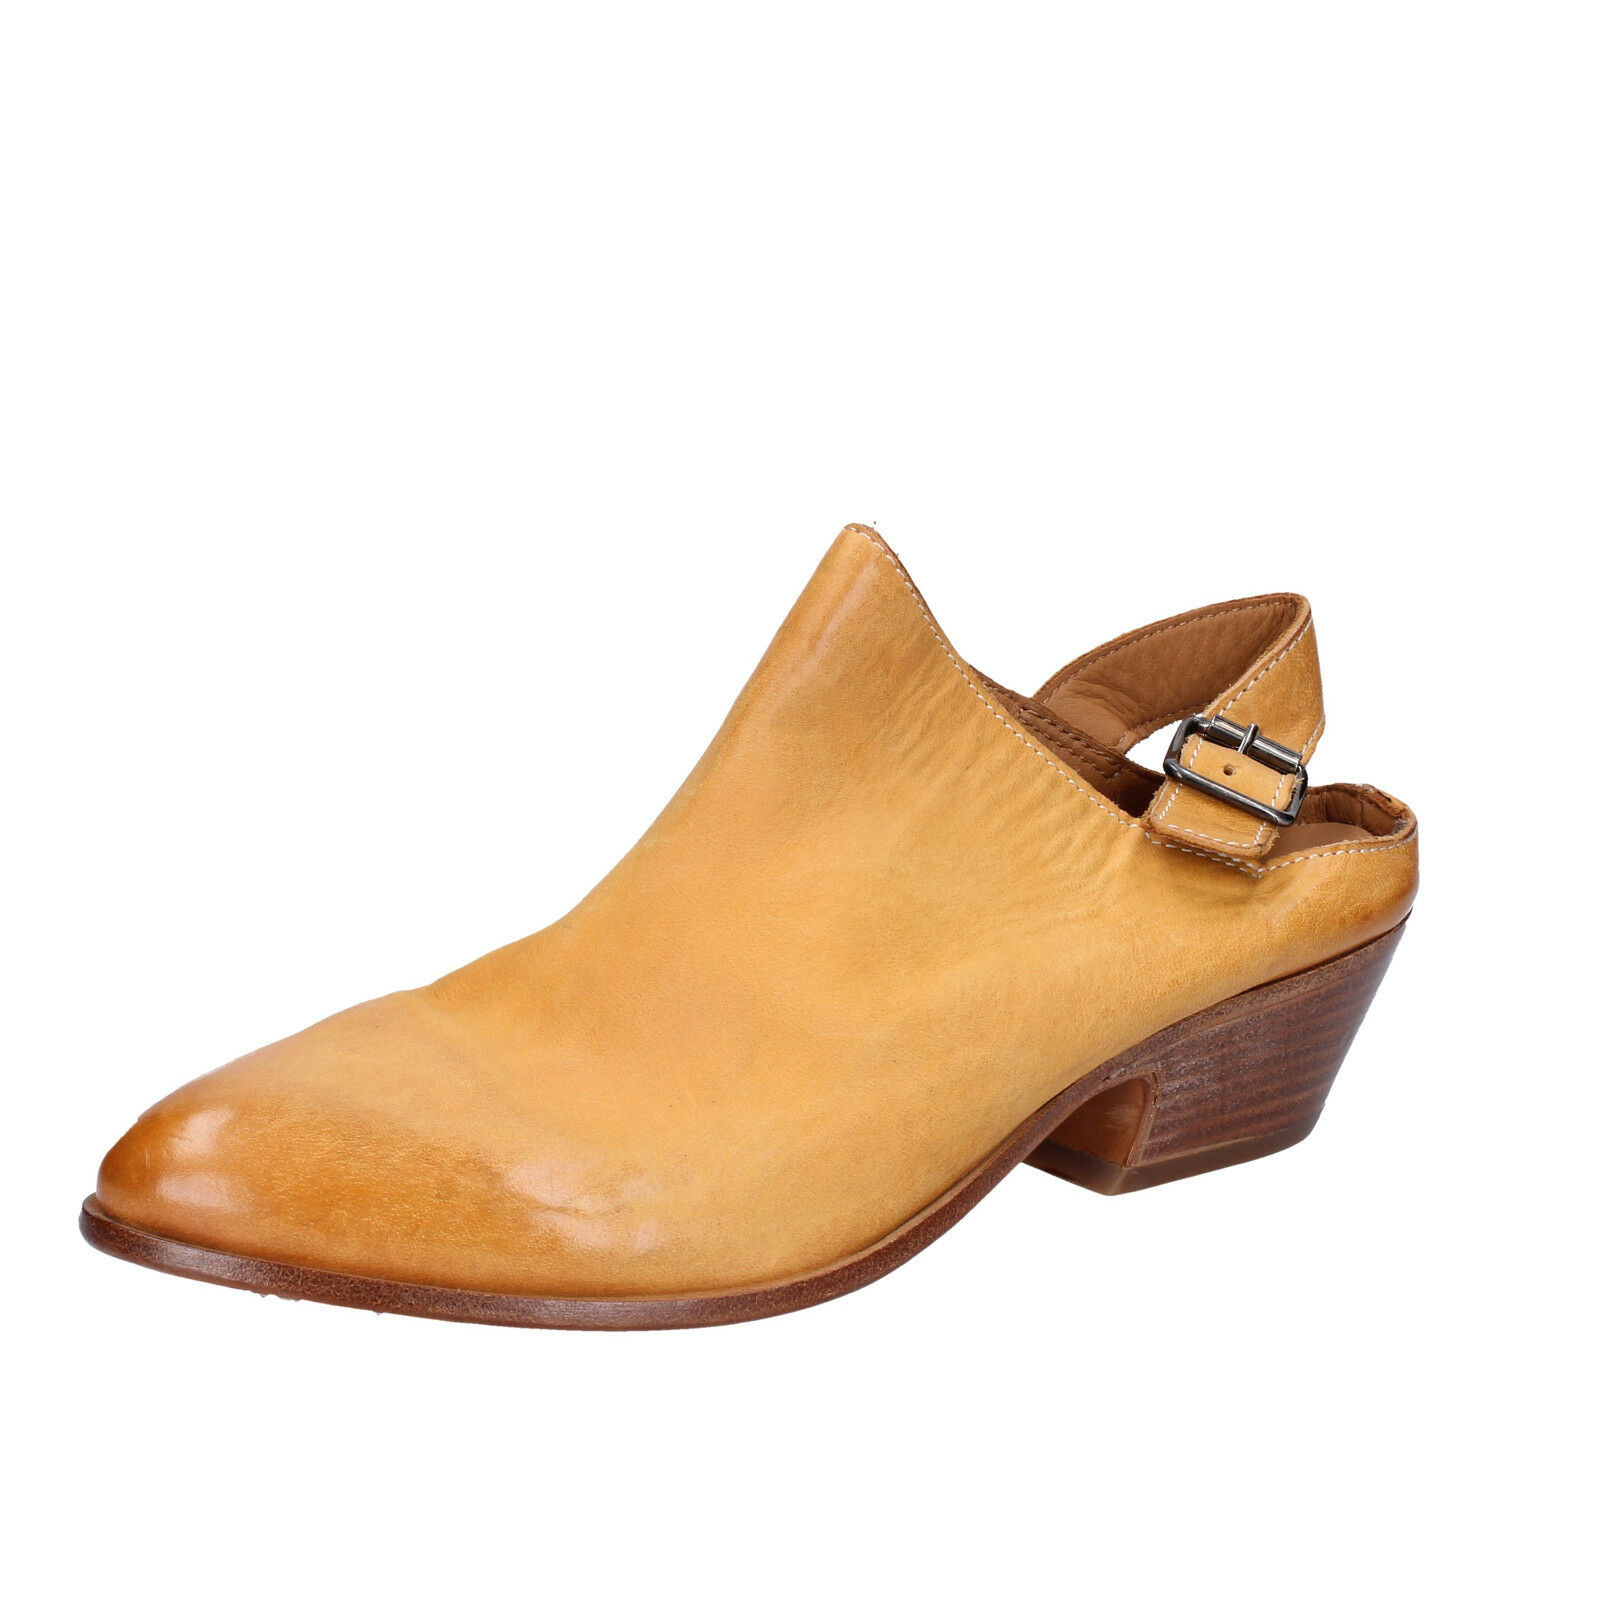 Women's shoes MOMA 7 (EU 37) sandals yellow leather BX975-37